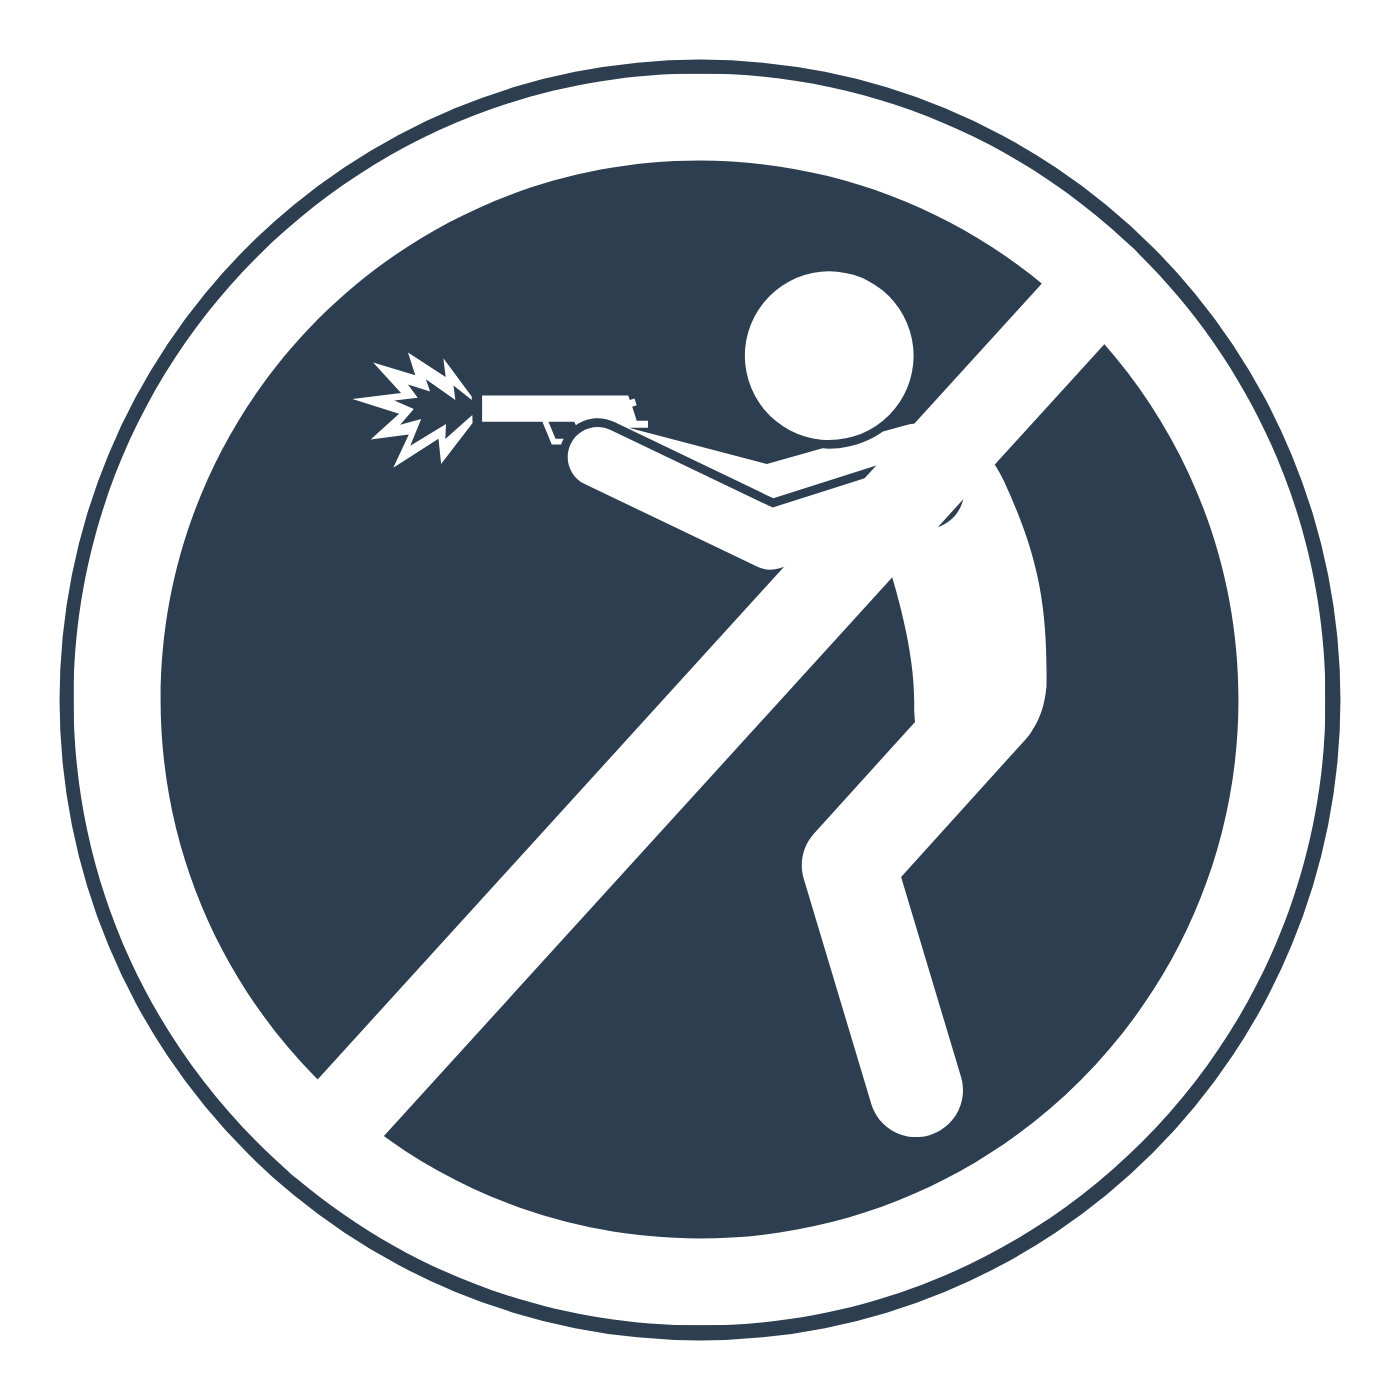 Copy of active shooter icon